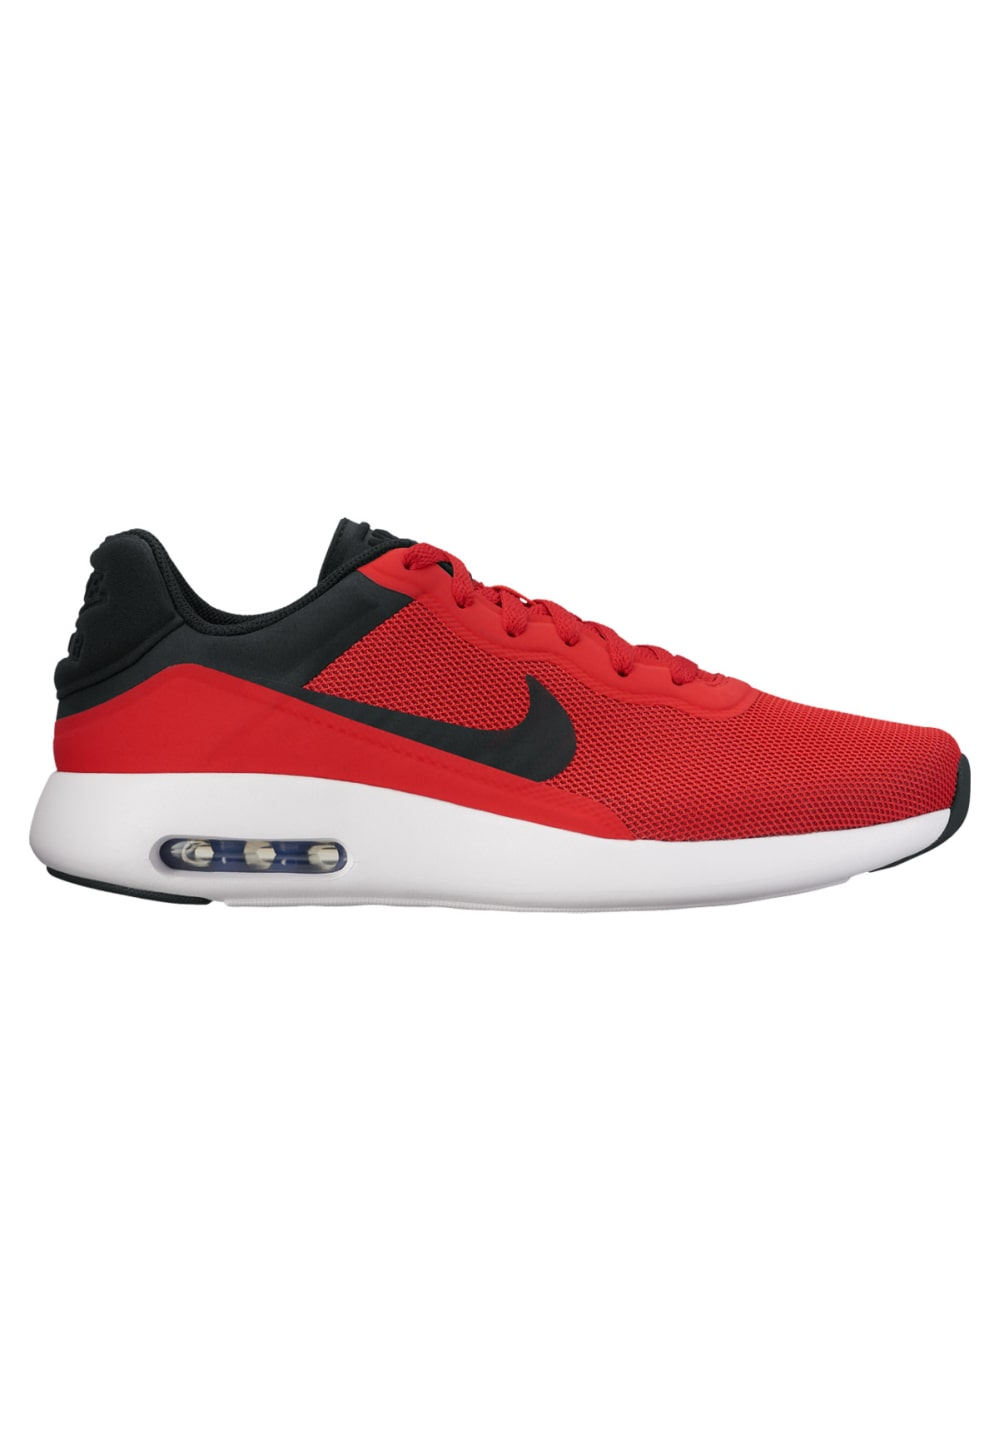 huge selection of 5756e 42b86 nike-air-max-modern-essential-sneaker-herren-rot-pid-000000000010118578.jpg